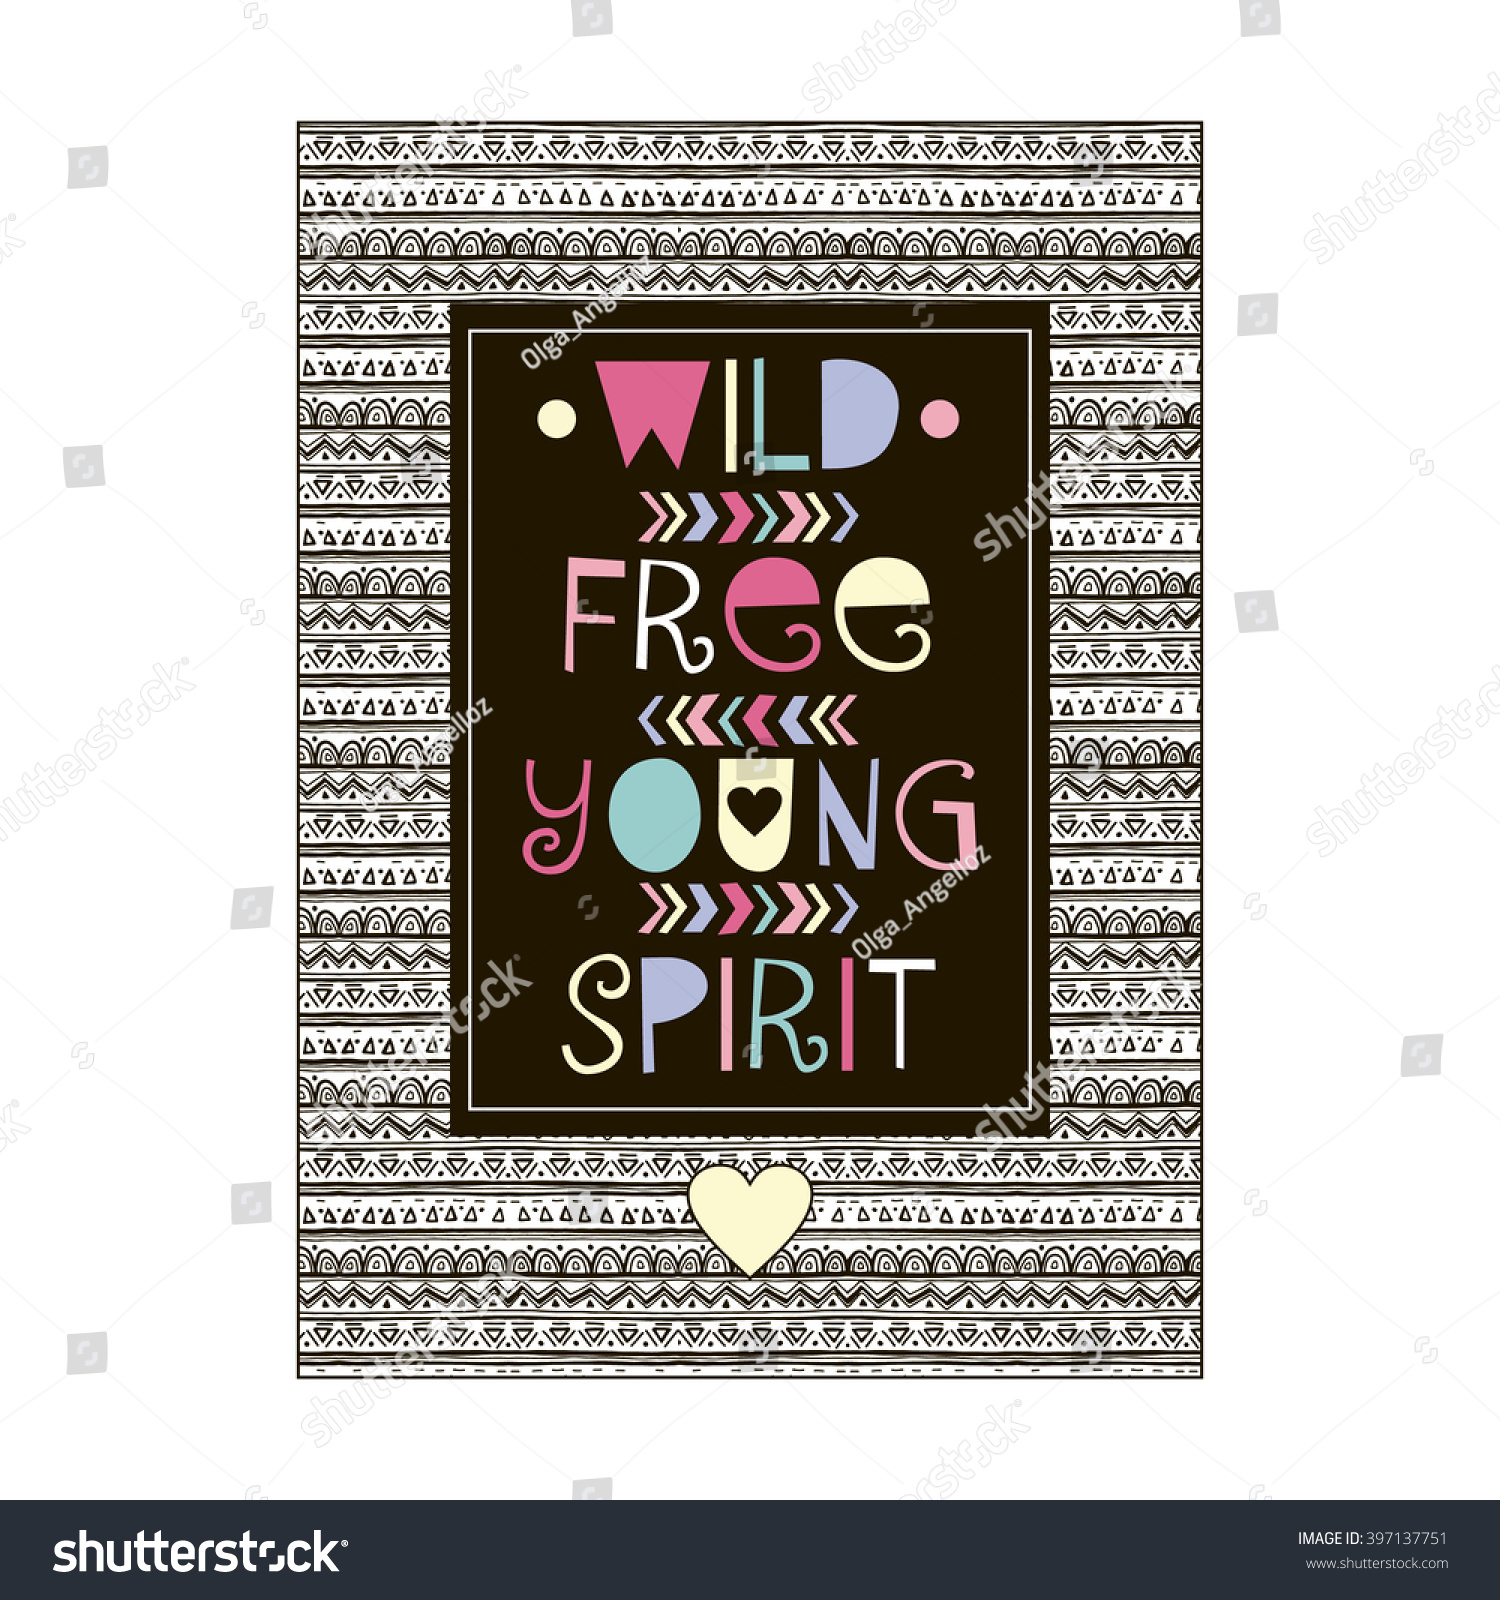 Aaa Quote Wild Free Young Spirit Quote Design Stock Vector 397137751